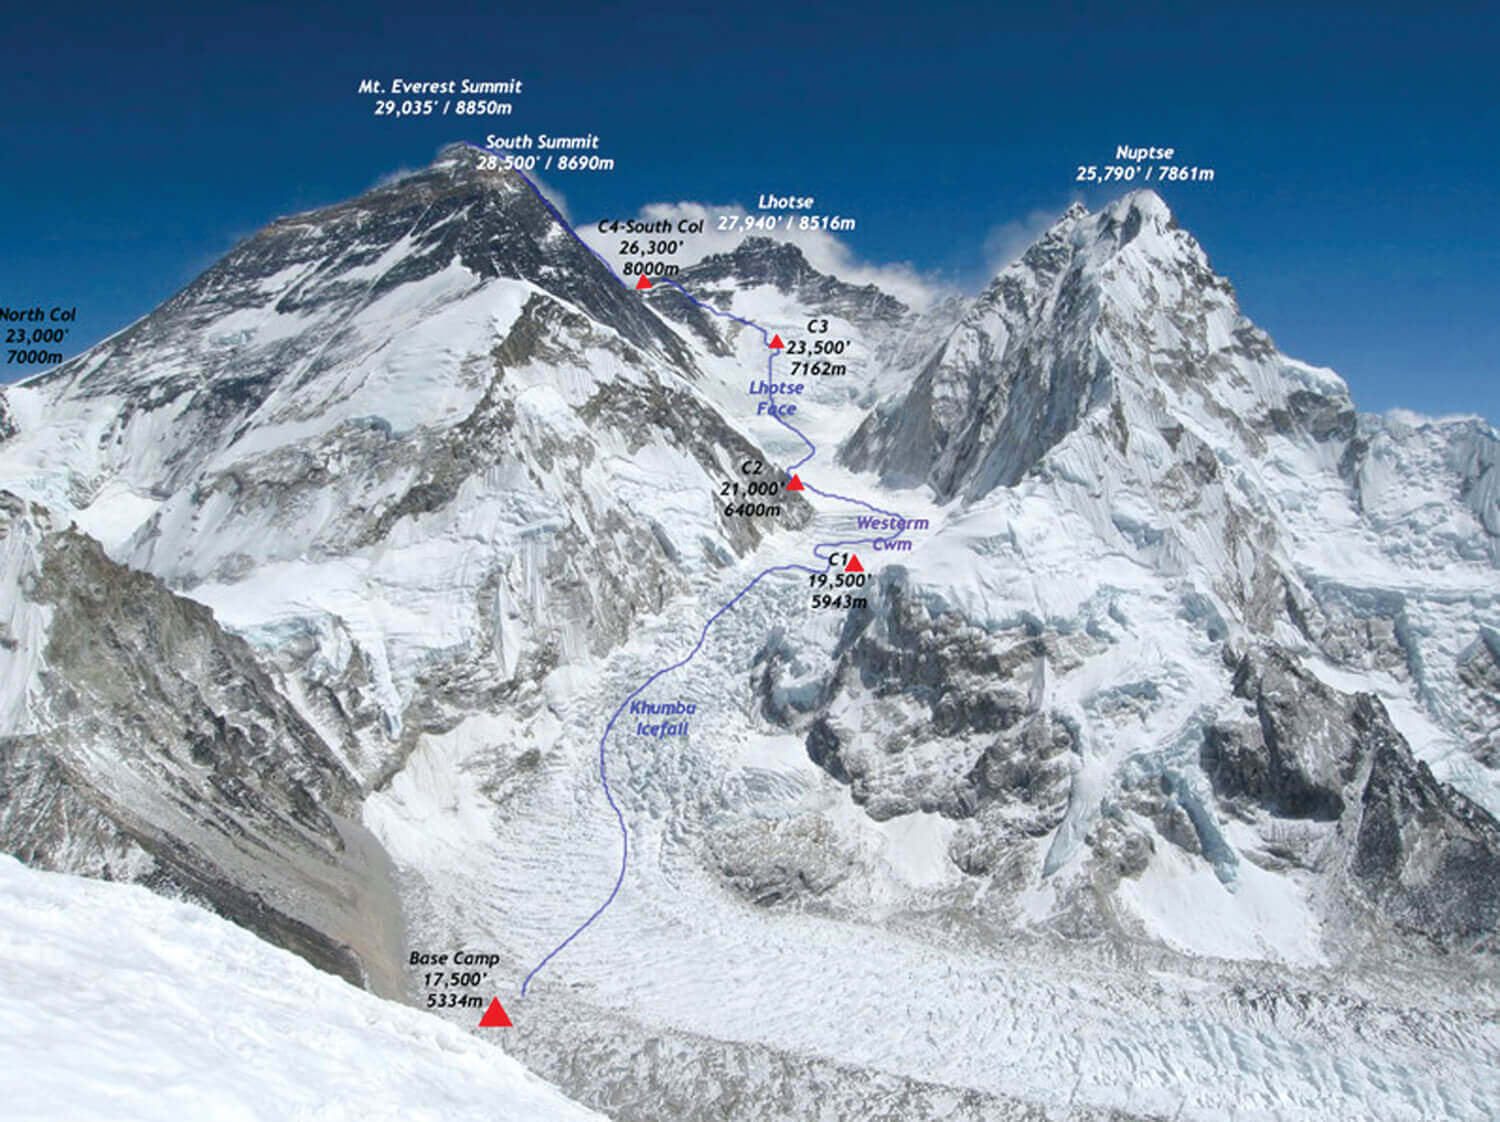 Summiting Sherpas Set Pair of Mount Everest Records